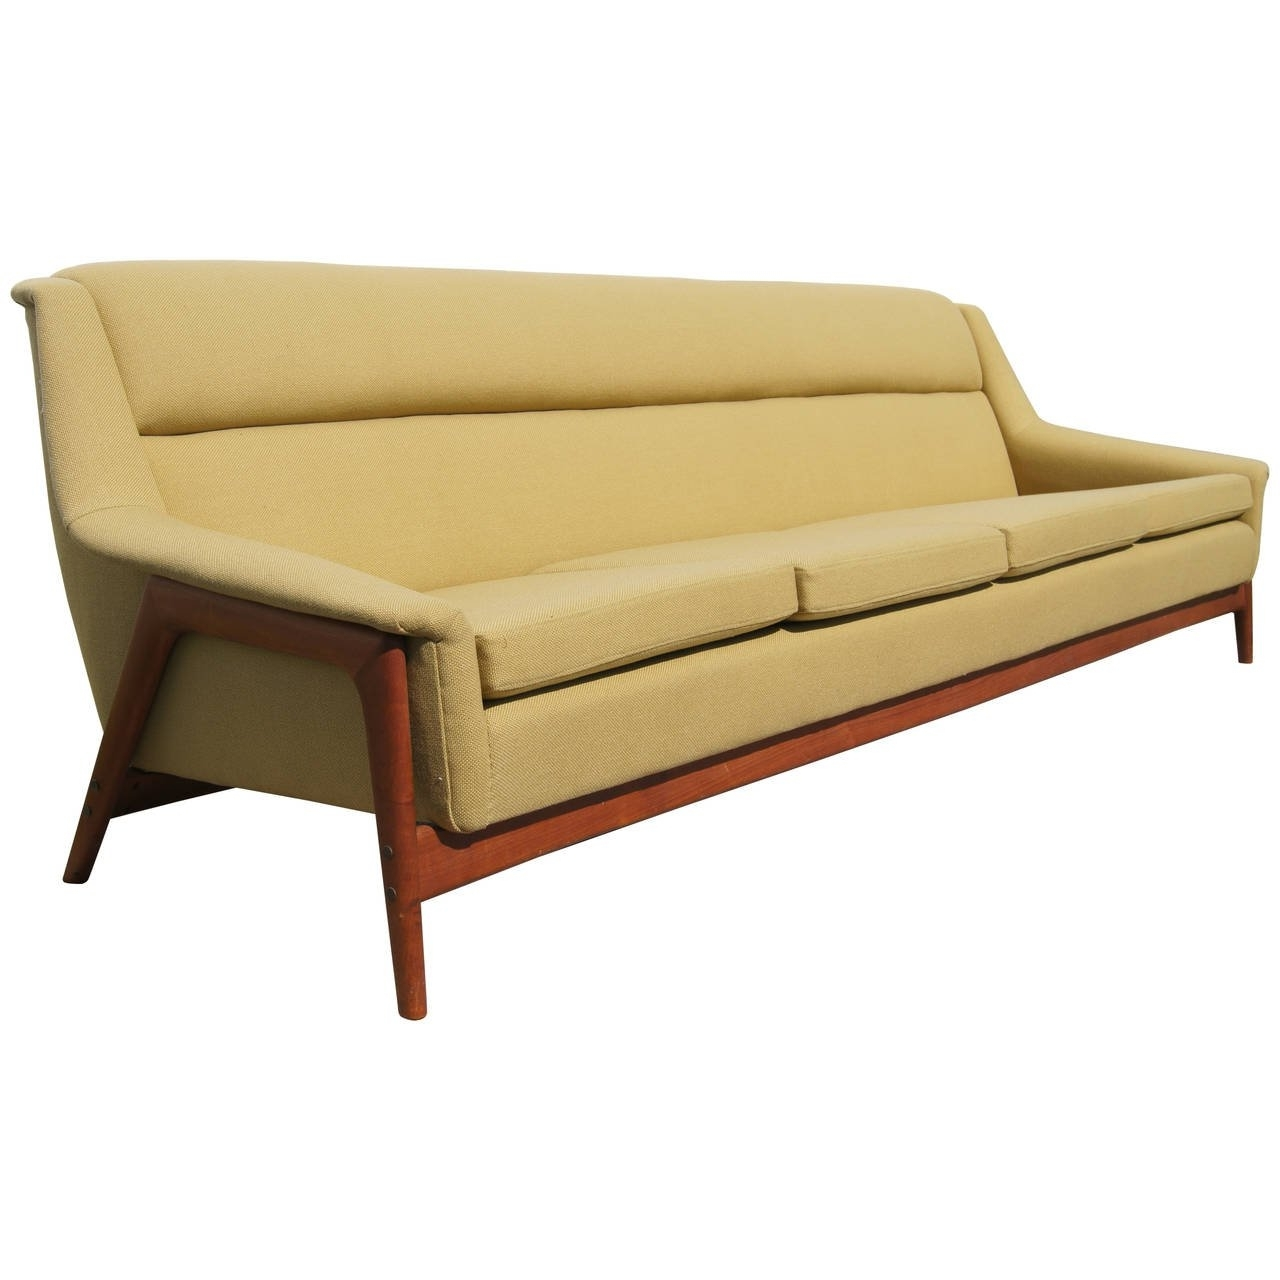 Four Seater Sofas Intended For Well Known Four Seater Sofafolke Ohlsson For Dux At 1Stdibs (View 7 of 20)